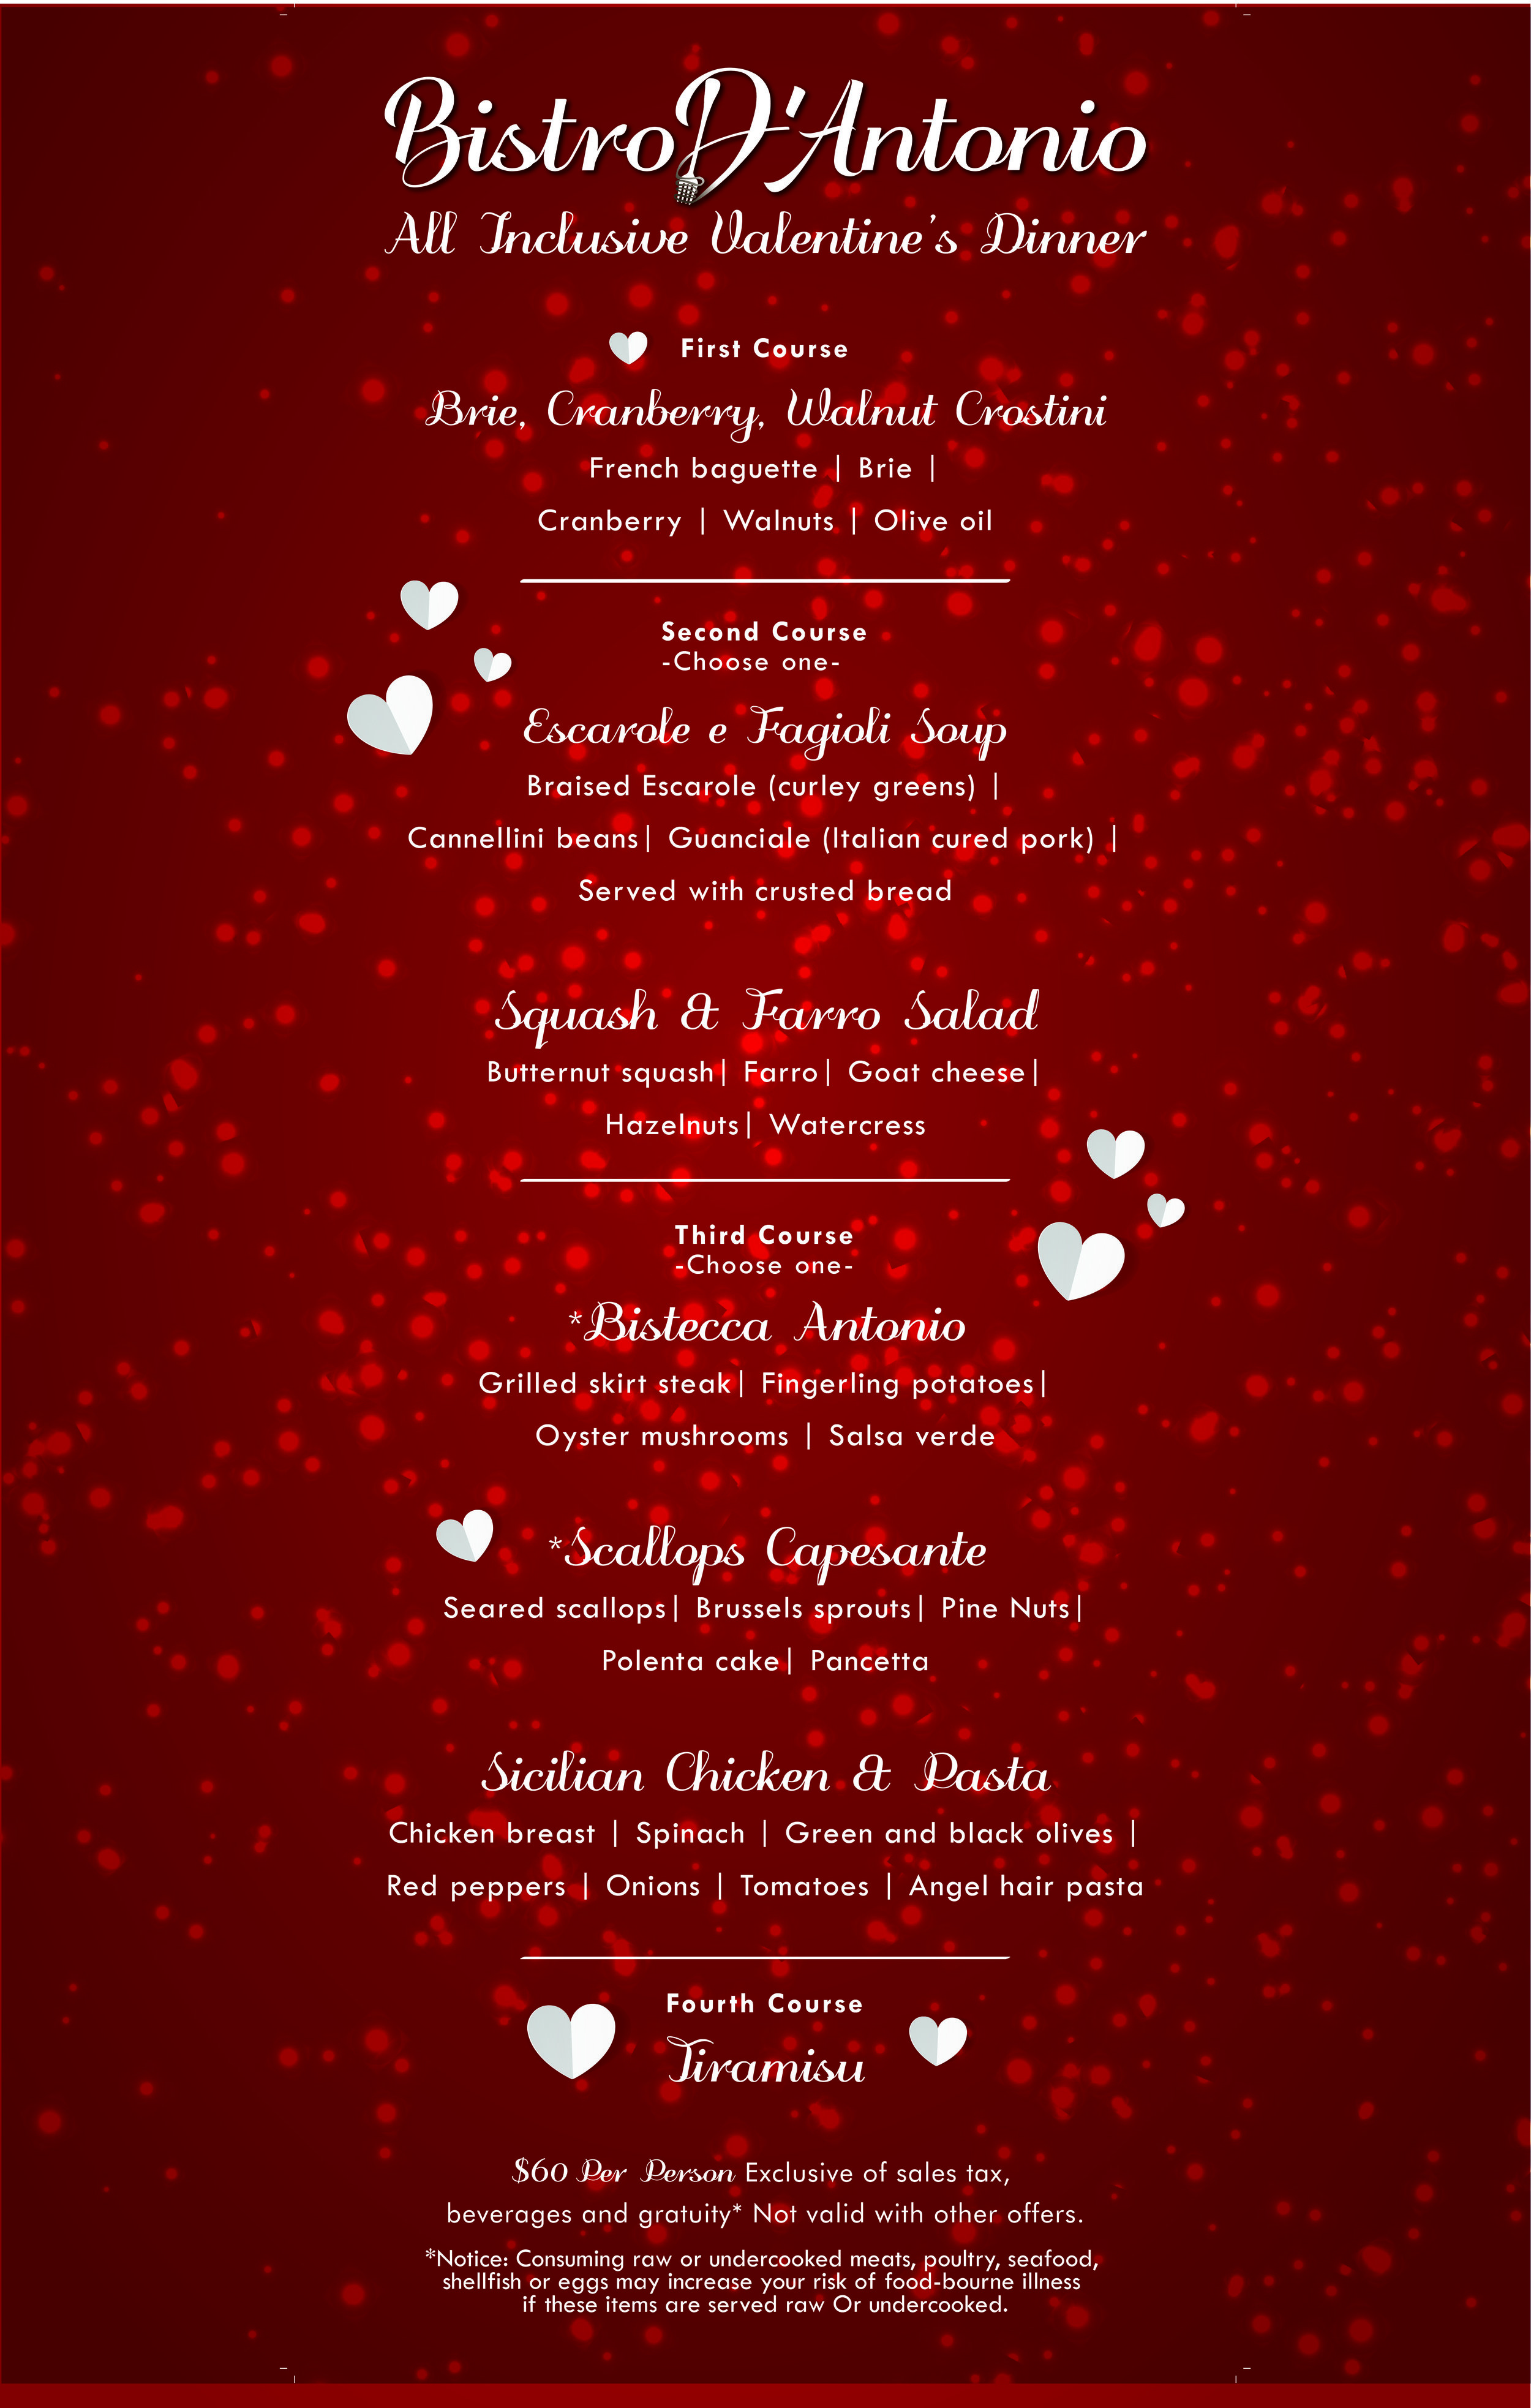 Treat your loved ones to a very special Valentines Day dinner! Join us Thursday the 14th. We will be serving our full menu as well as a special Valentines edition, All Inclusive Menu! (will be posted as soon as it's available!) Our FOUR COURSE All Inclusive Valentines Dinner is $60 per person *not including drinks, tax or gratuity.